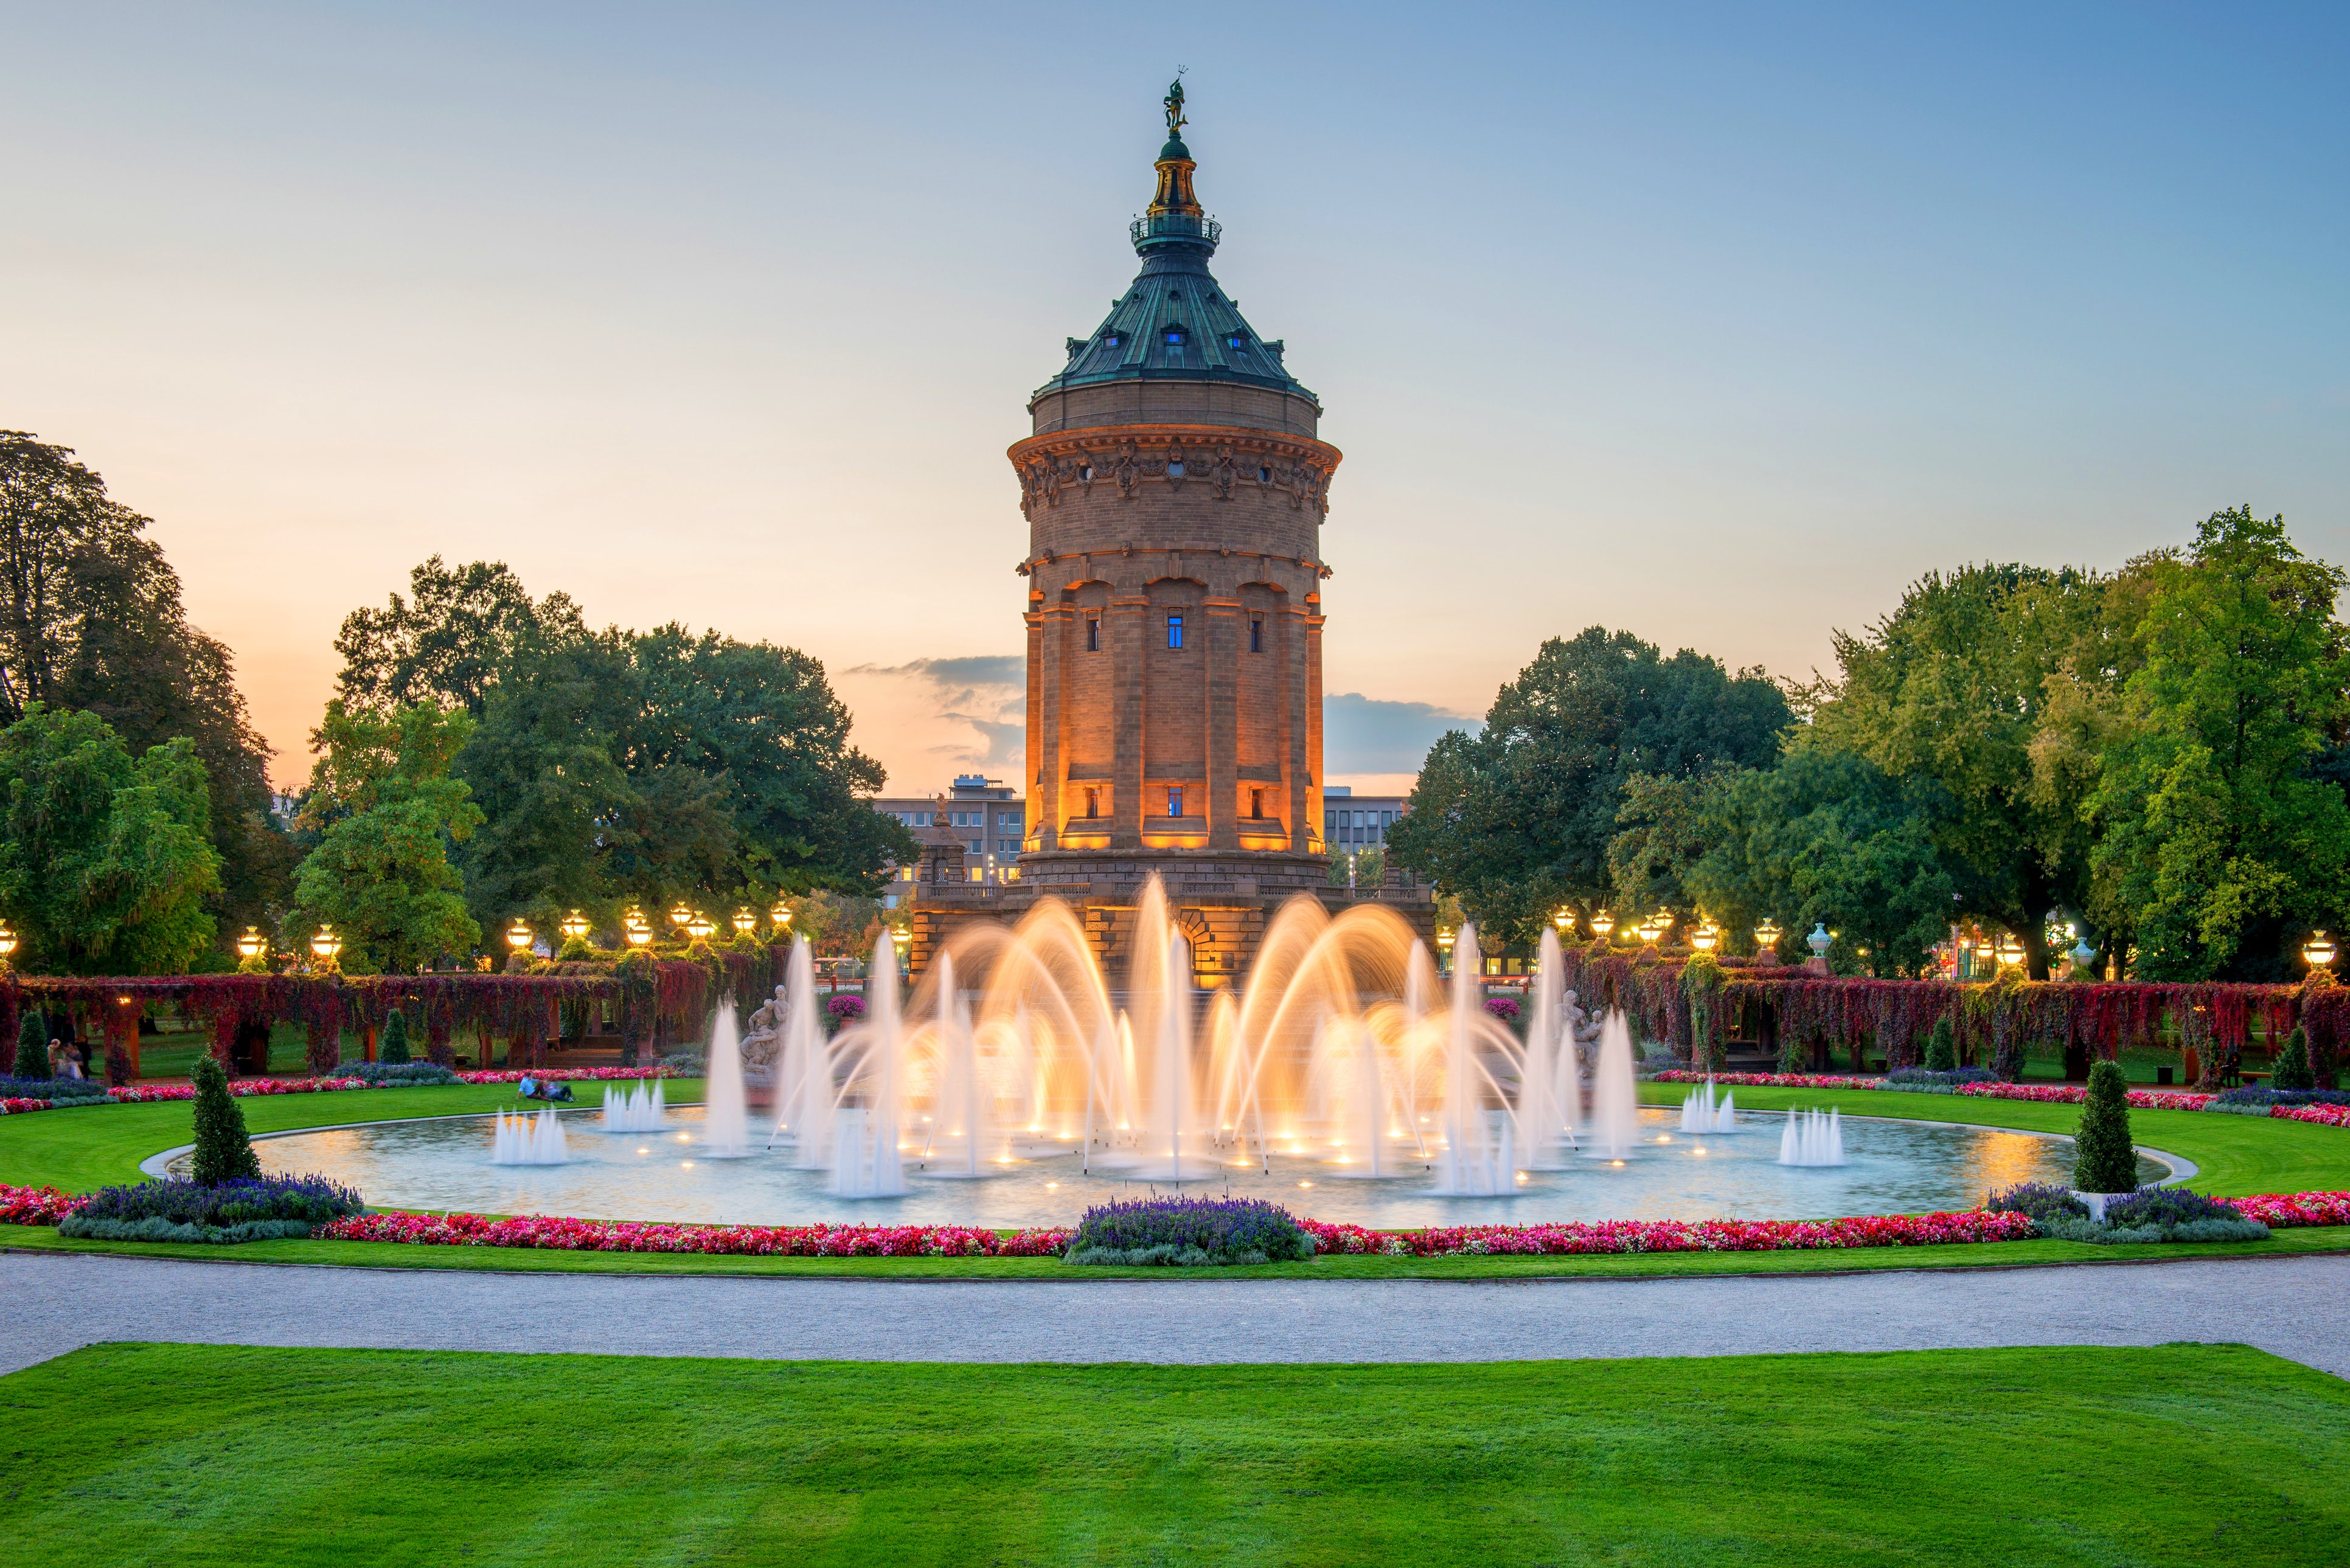 Mannheim: Where Industry meets History